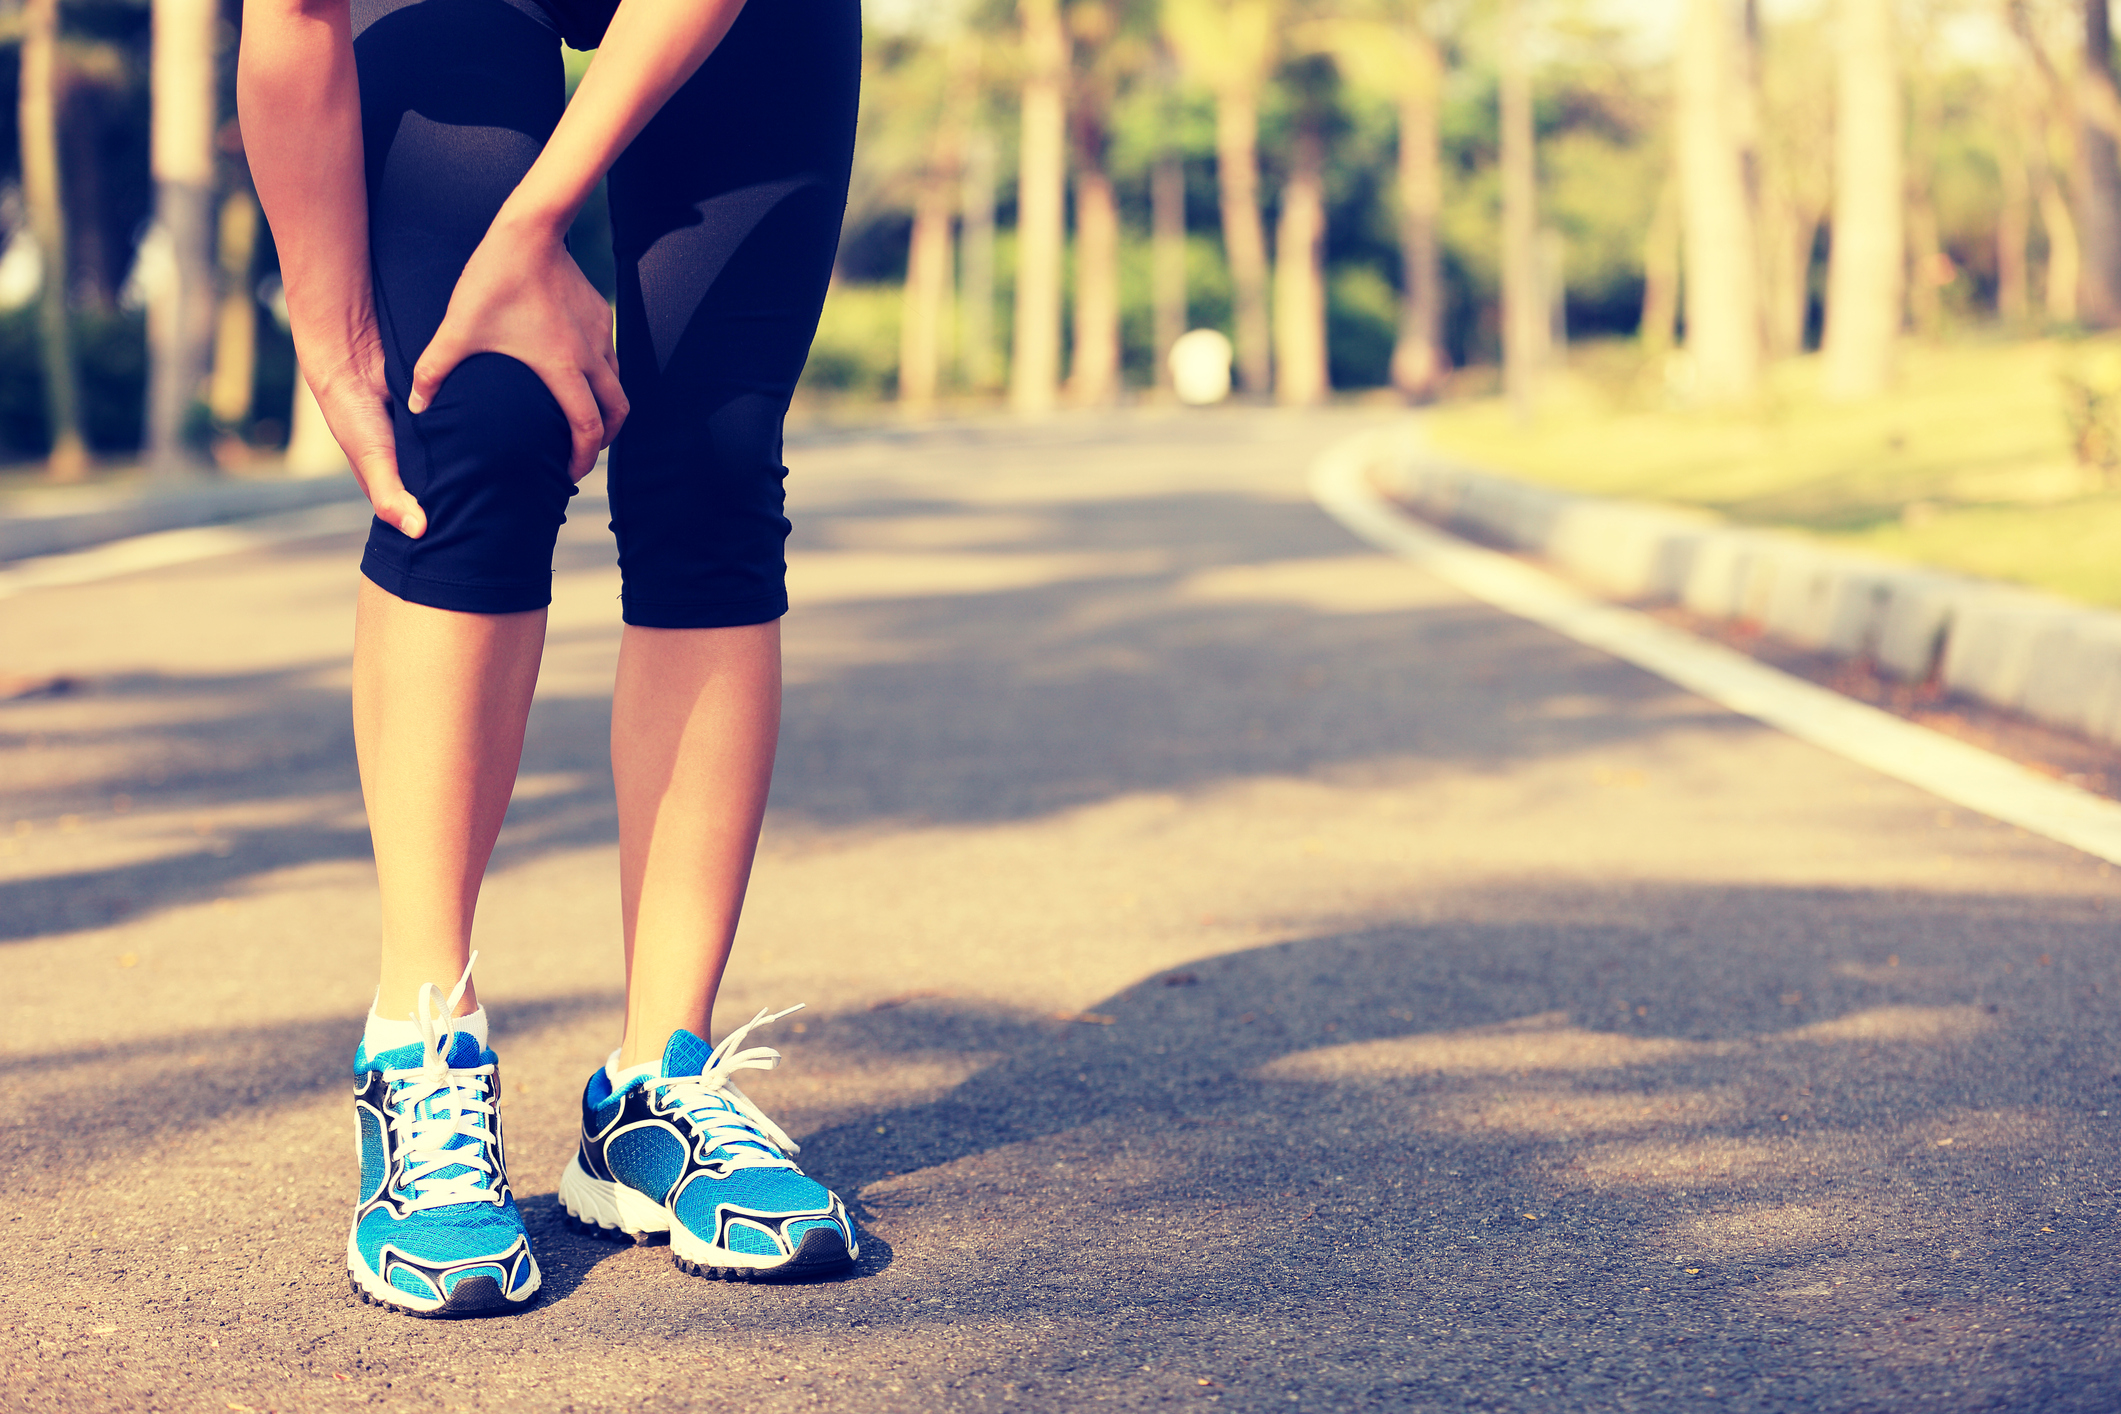 Could a sore knee lead to unnecessary surgery?